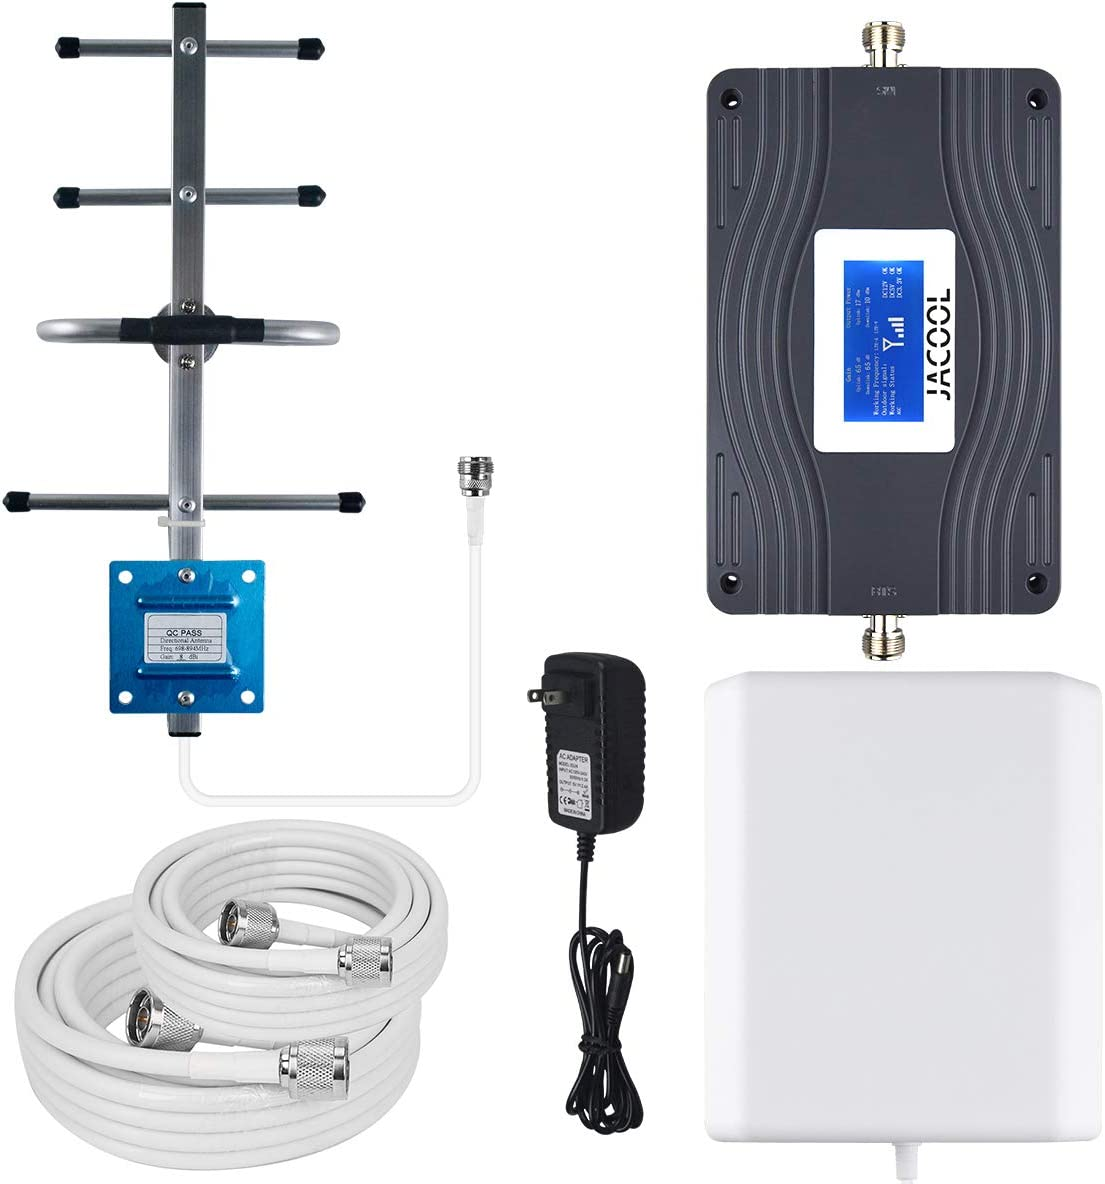 Verizon AT&T Cell Phone Signal Booster Dual 700MHz Band 13/12/ 17 4G LTE Cellular Signal Booster FDD High Gain 65dB Cell Phone Booster Amplifier Repeater for Remote Area Verizon ATT T-Mobile